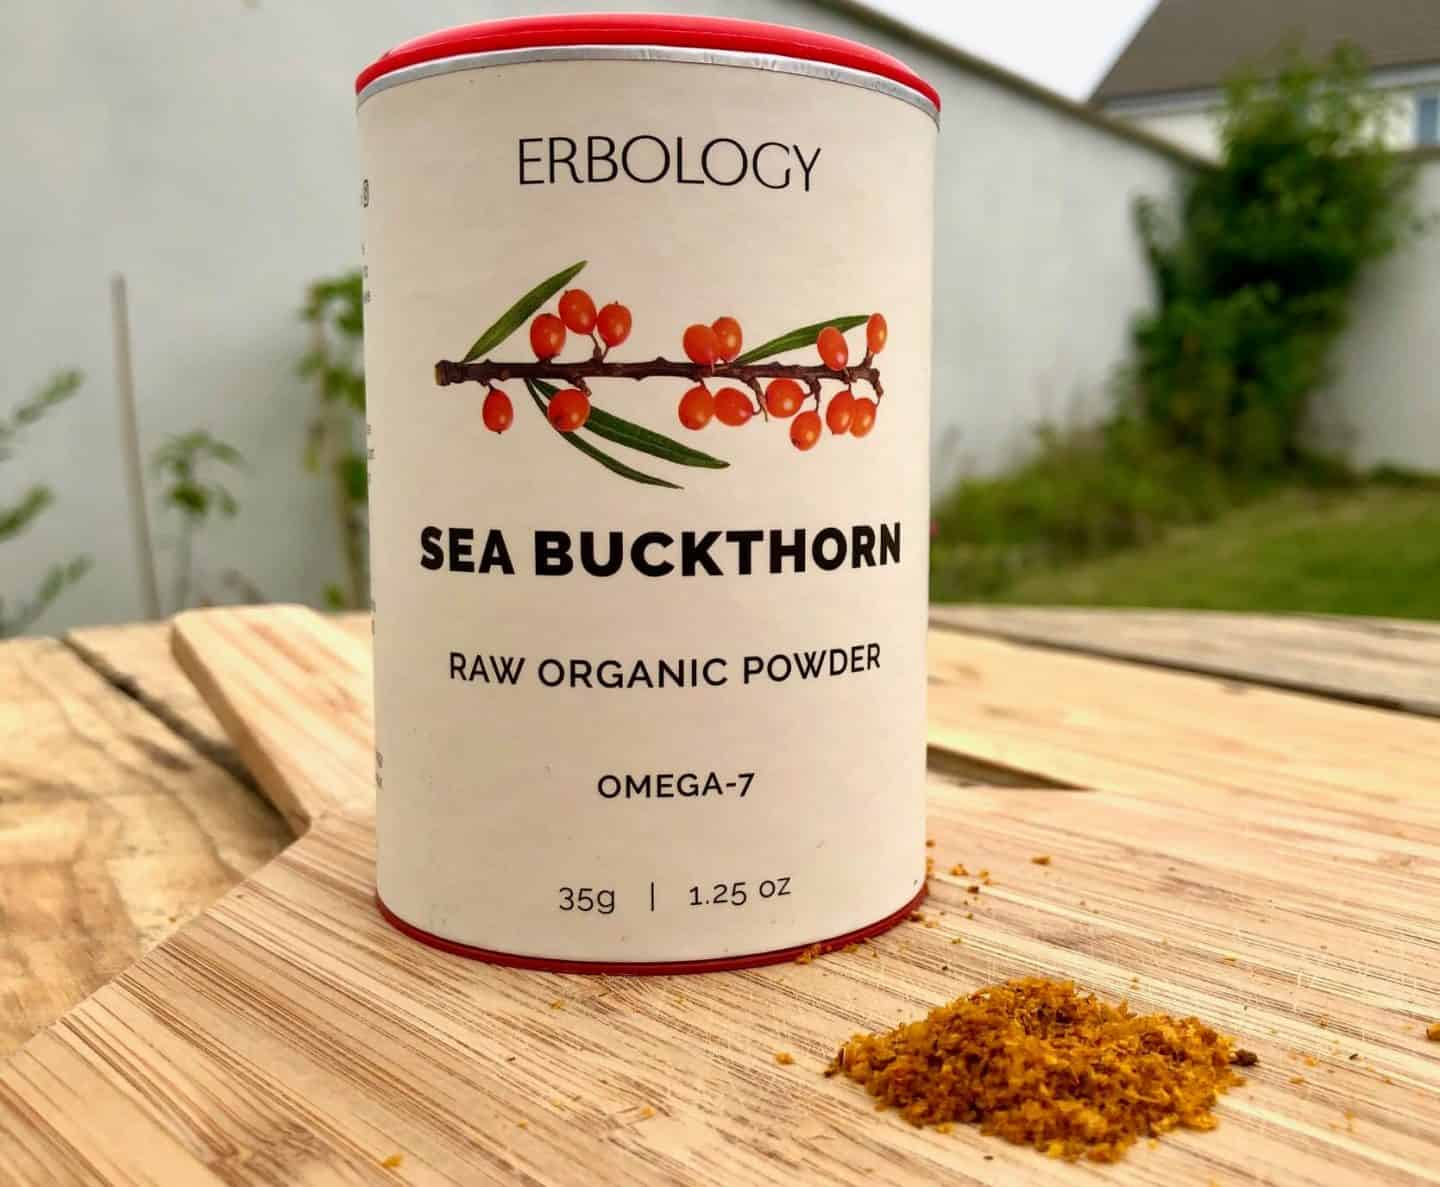 Sea Buckthorn organic powder - rich in omega 7